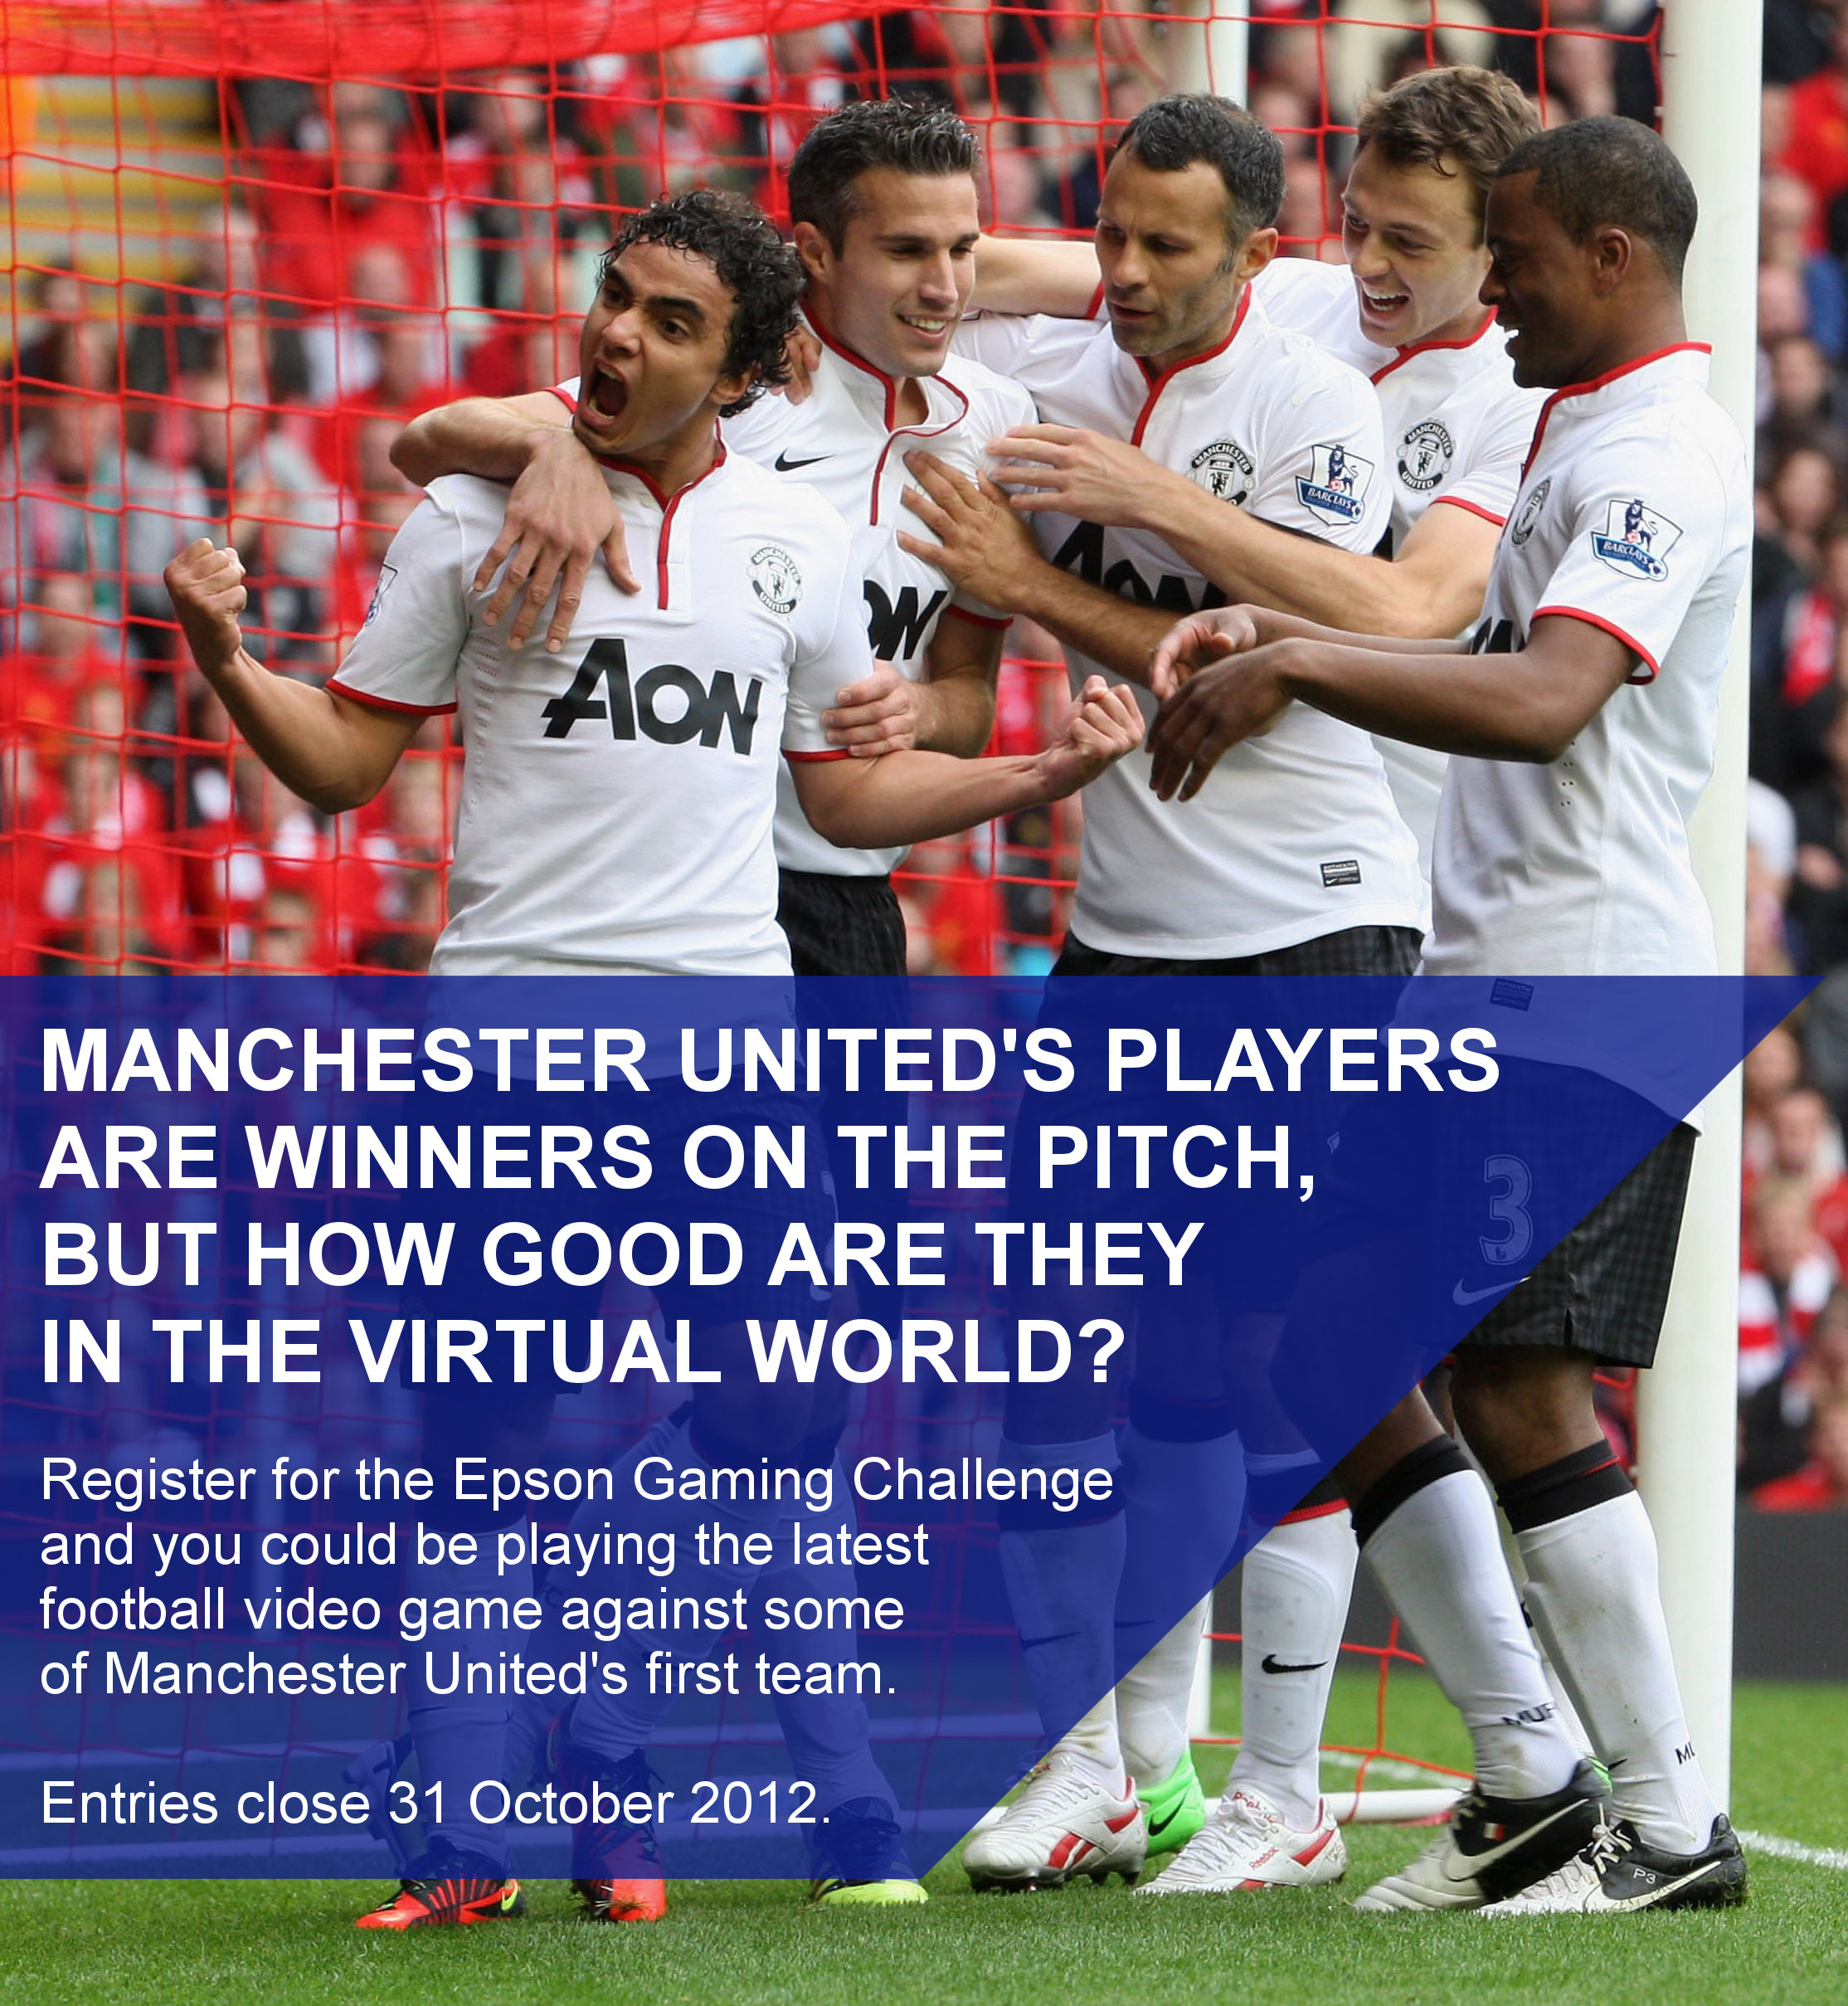 Enter the Epson Gaming Challenge by 31 October 2012 and you could be playing the latest football video game against some of Manchester United's first team players.